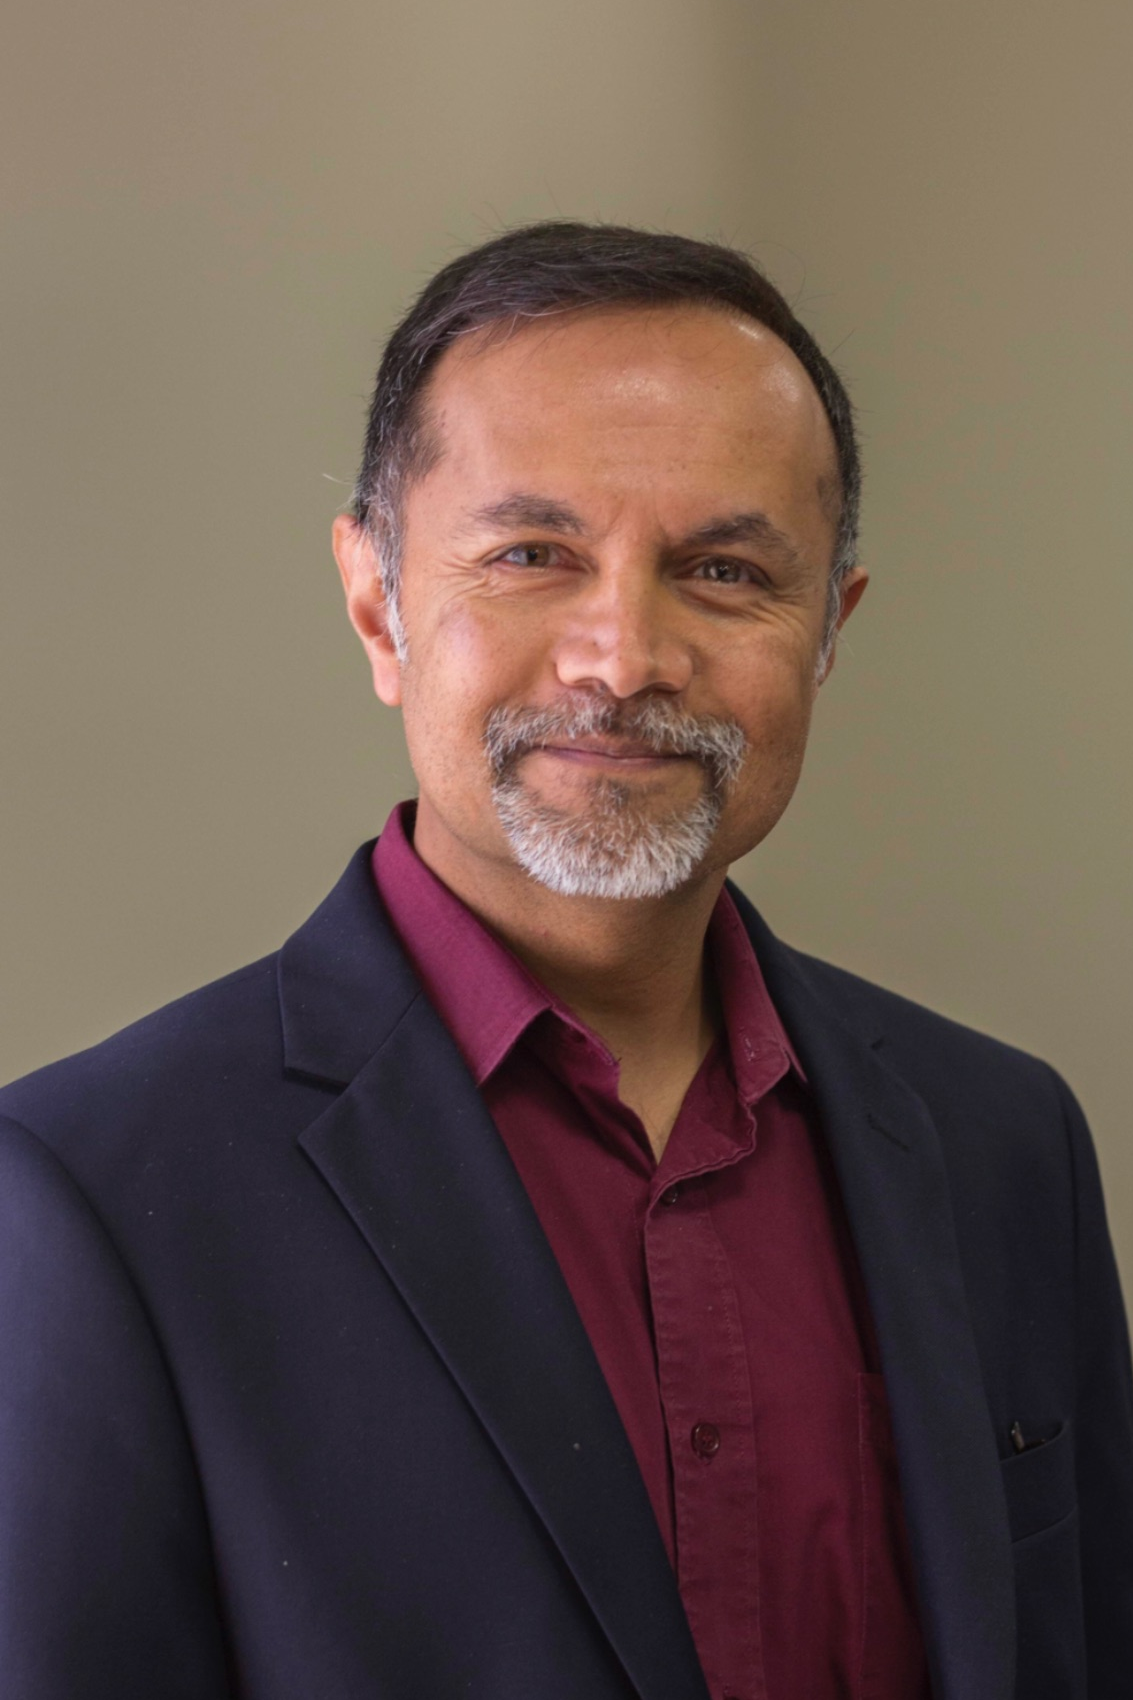 Sameer Mistry, MD - Medical School: USC Keck School of MedicineResidency: Harbor UCLA Medical CenterYear Joined: 1995Career Highlights: Dept. Chair, Chief of Staff, ABEM ExaminerSpecial Interests: Wrenching, Pen making, Healthcare finance, and just getting after it